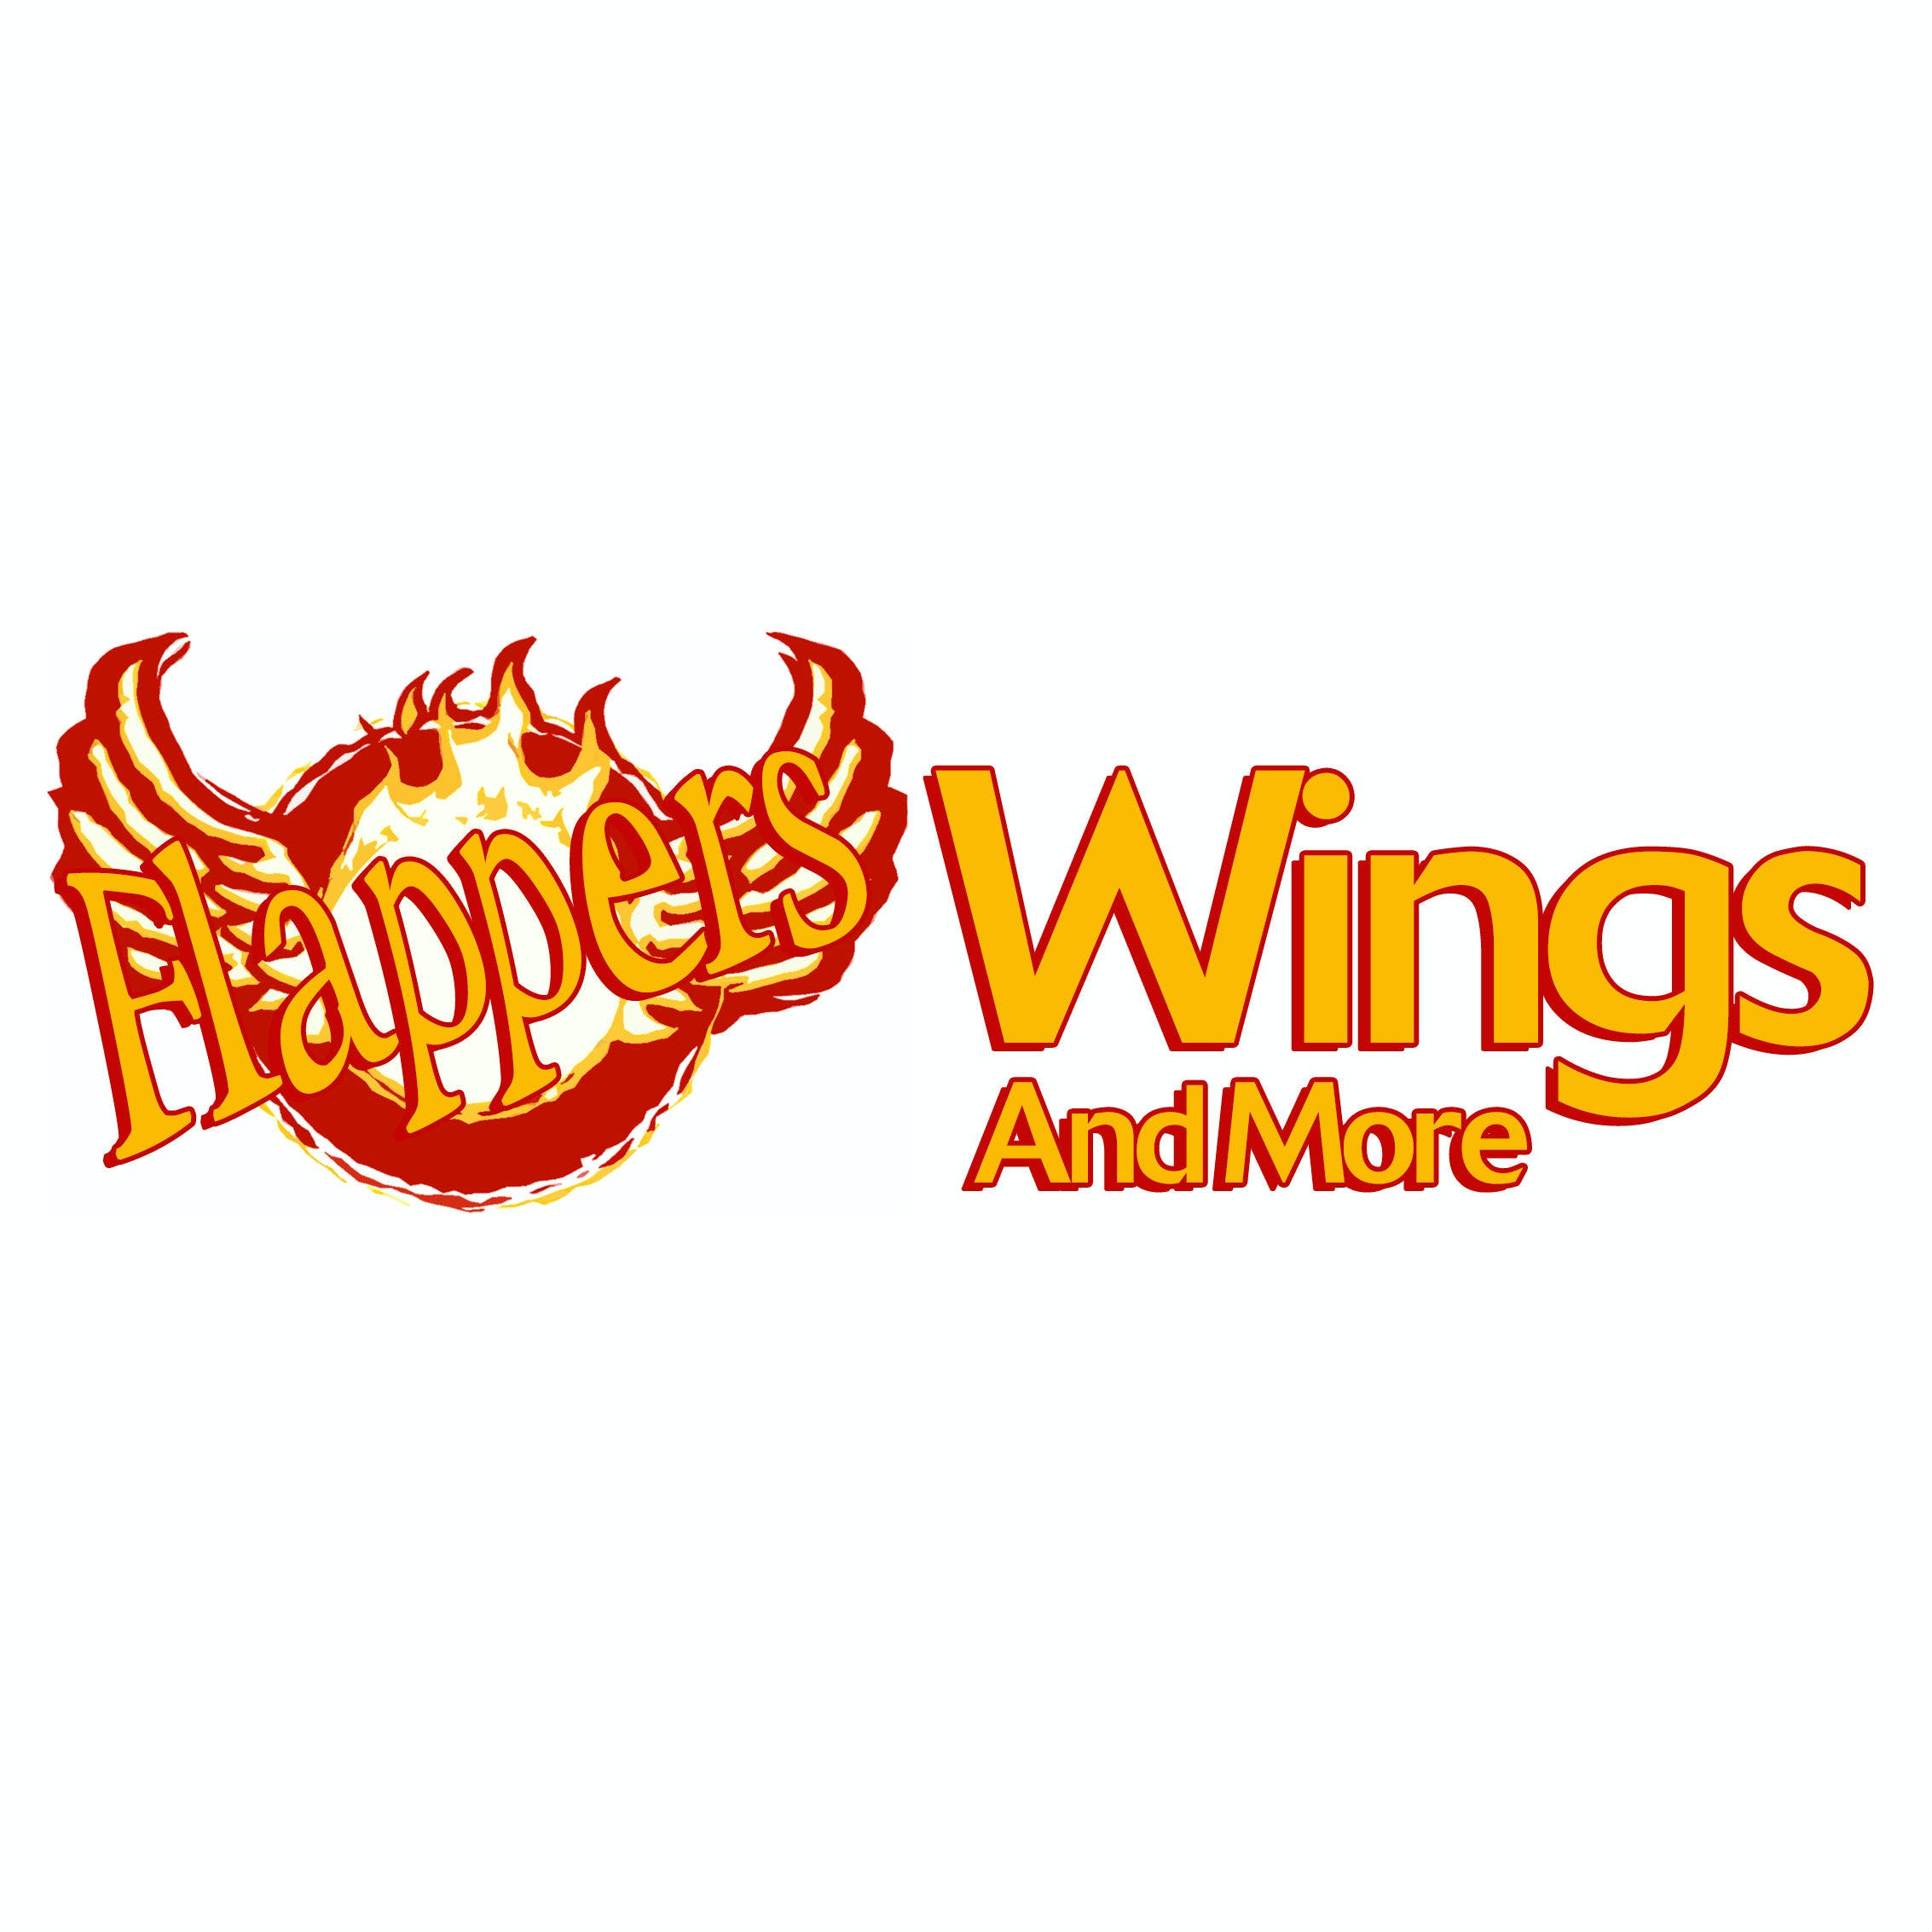 Flapper's Wings 'n More - Bayshore Menu and Delivery in Glendale WI, 53217